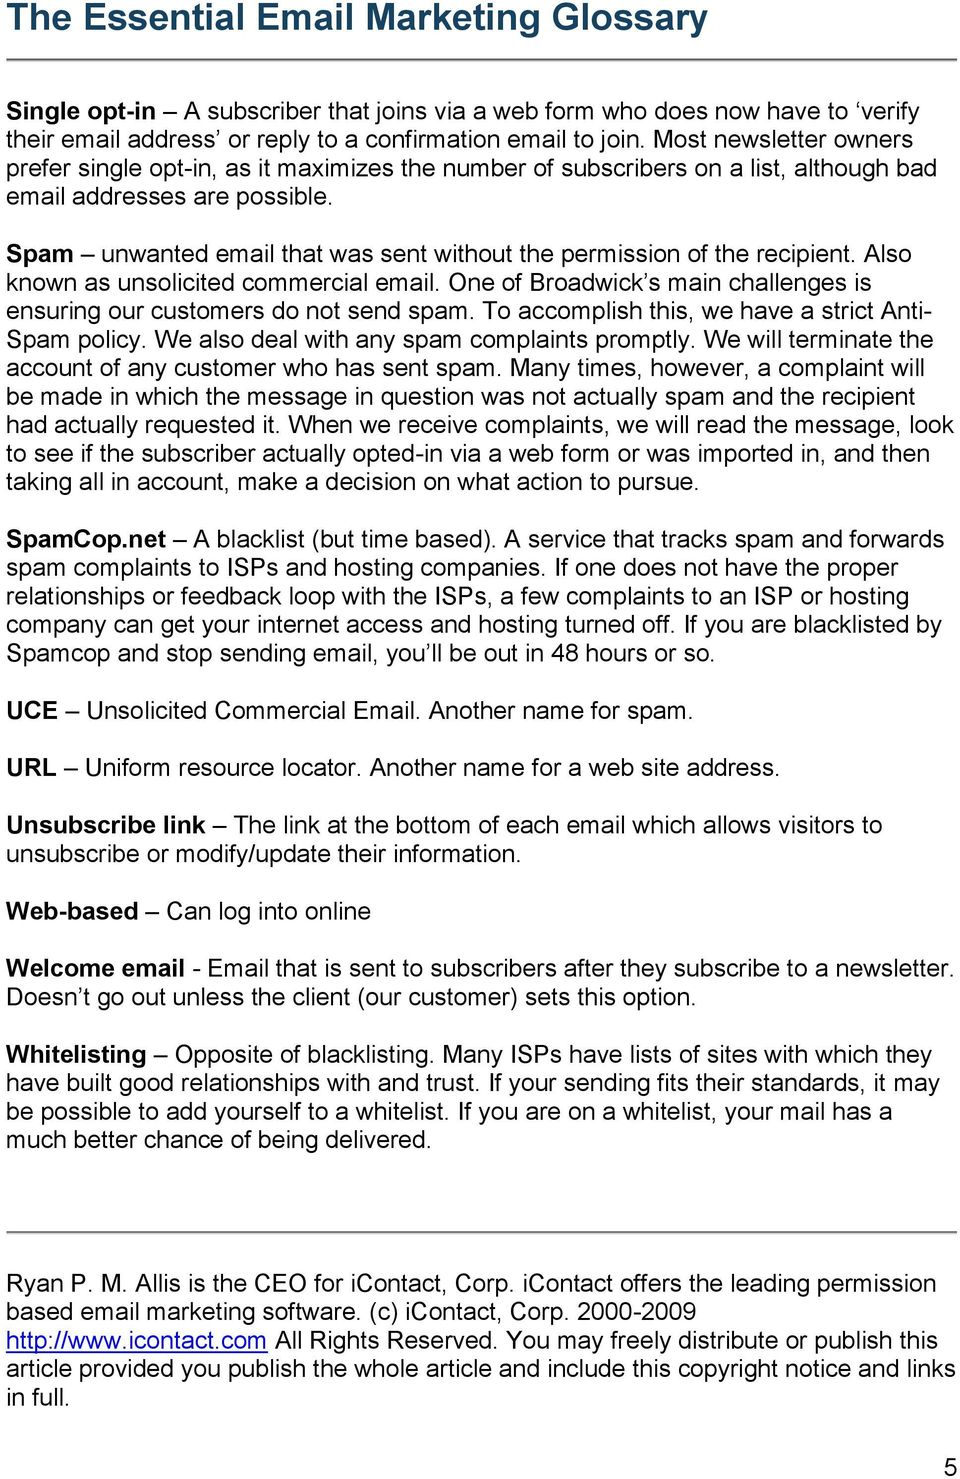 Spam unwanted email that was sent without the permission of the recipient. Also known as unsolicited commercial email. One of Broadwick s main challenges is ensuring our customers do not send spam.